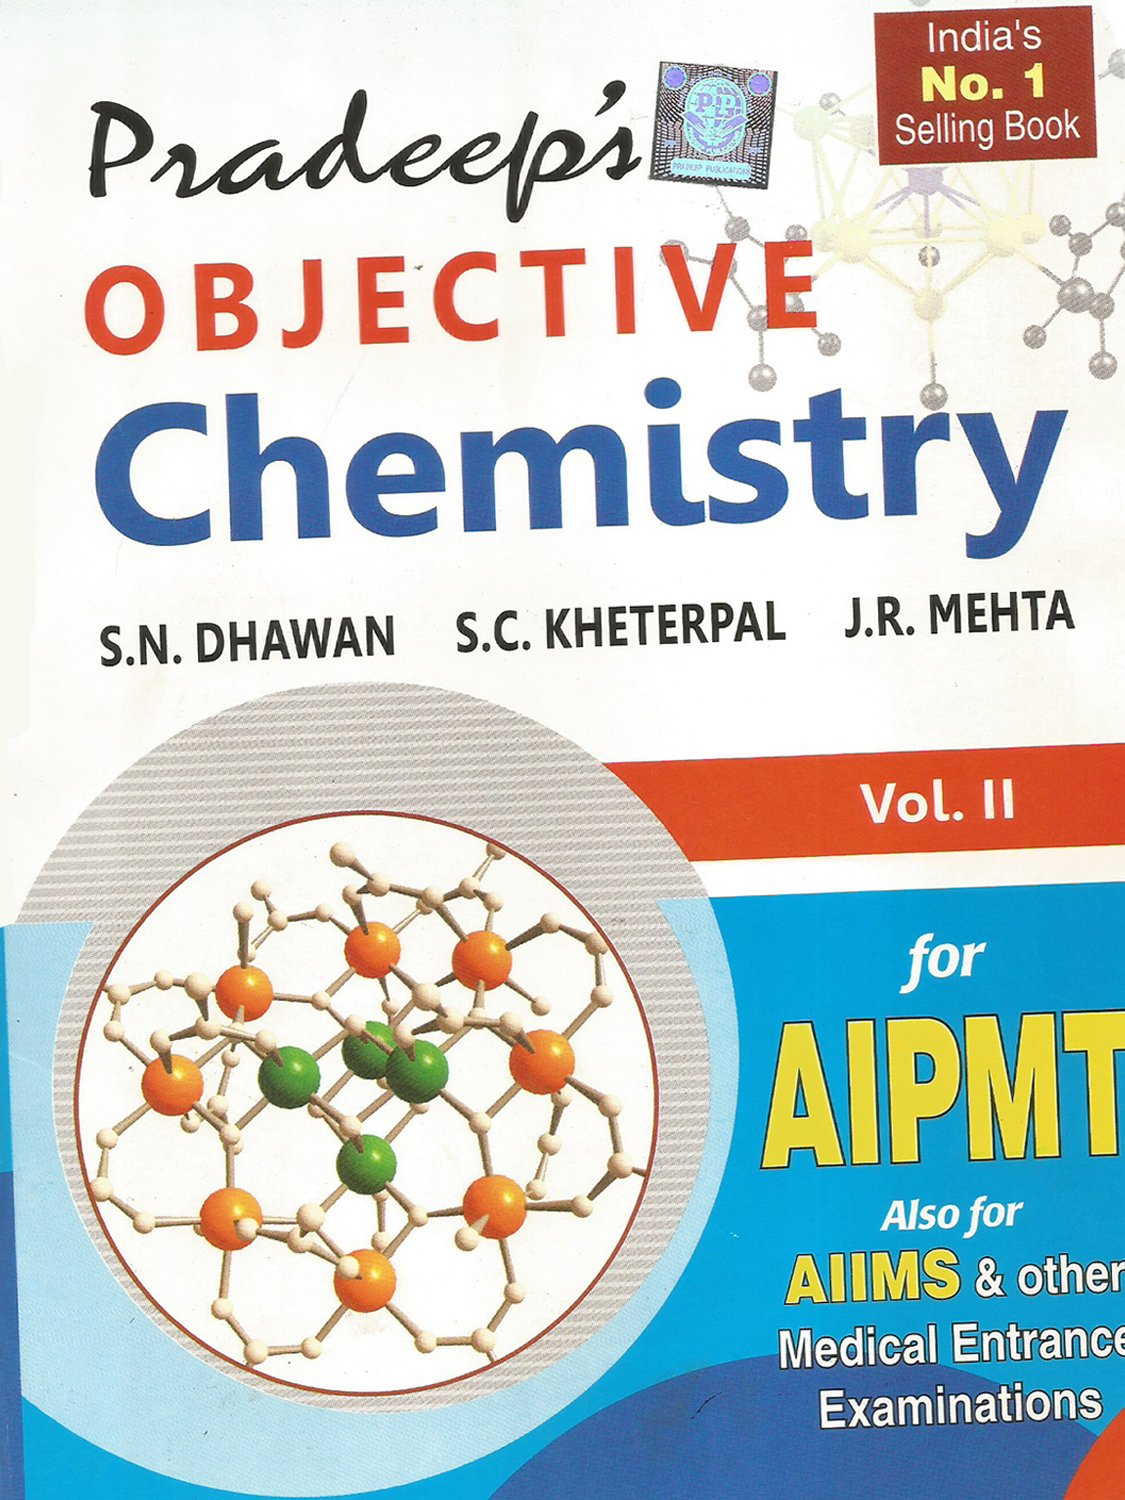 Pradeep s objective chemistry vol i ii for aipmt other medical entrance examination amazon in books